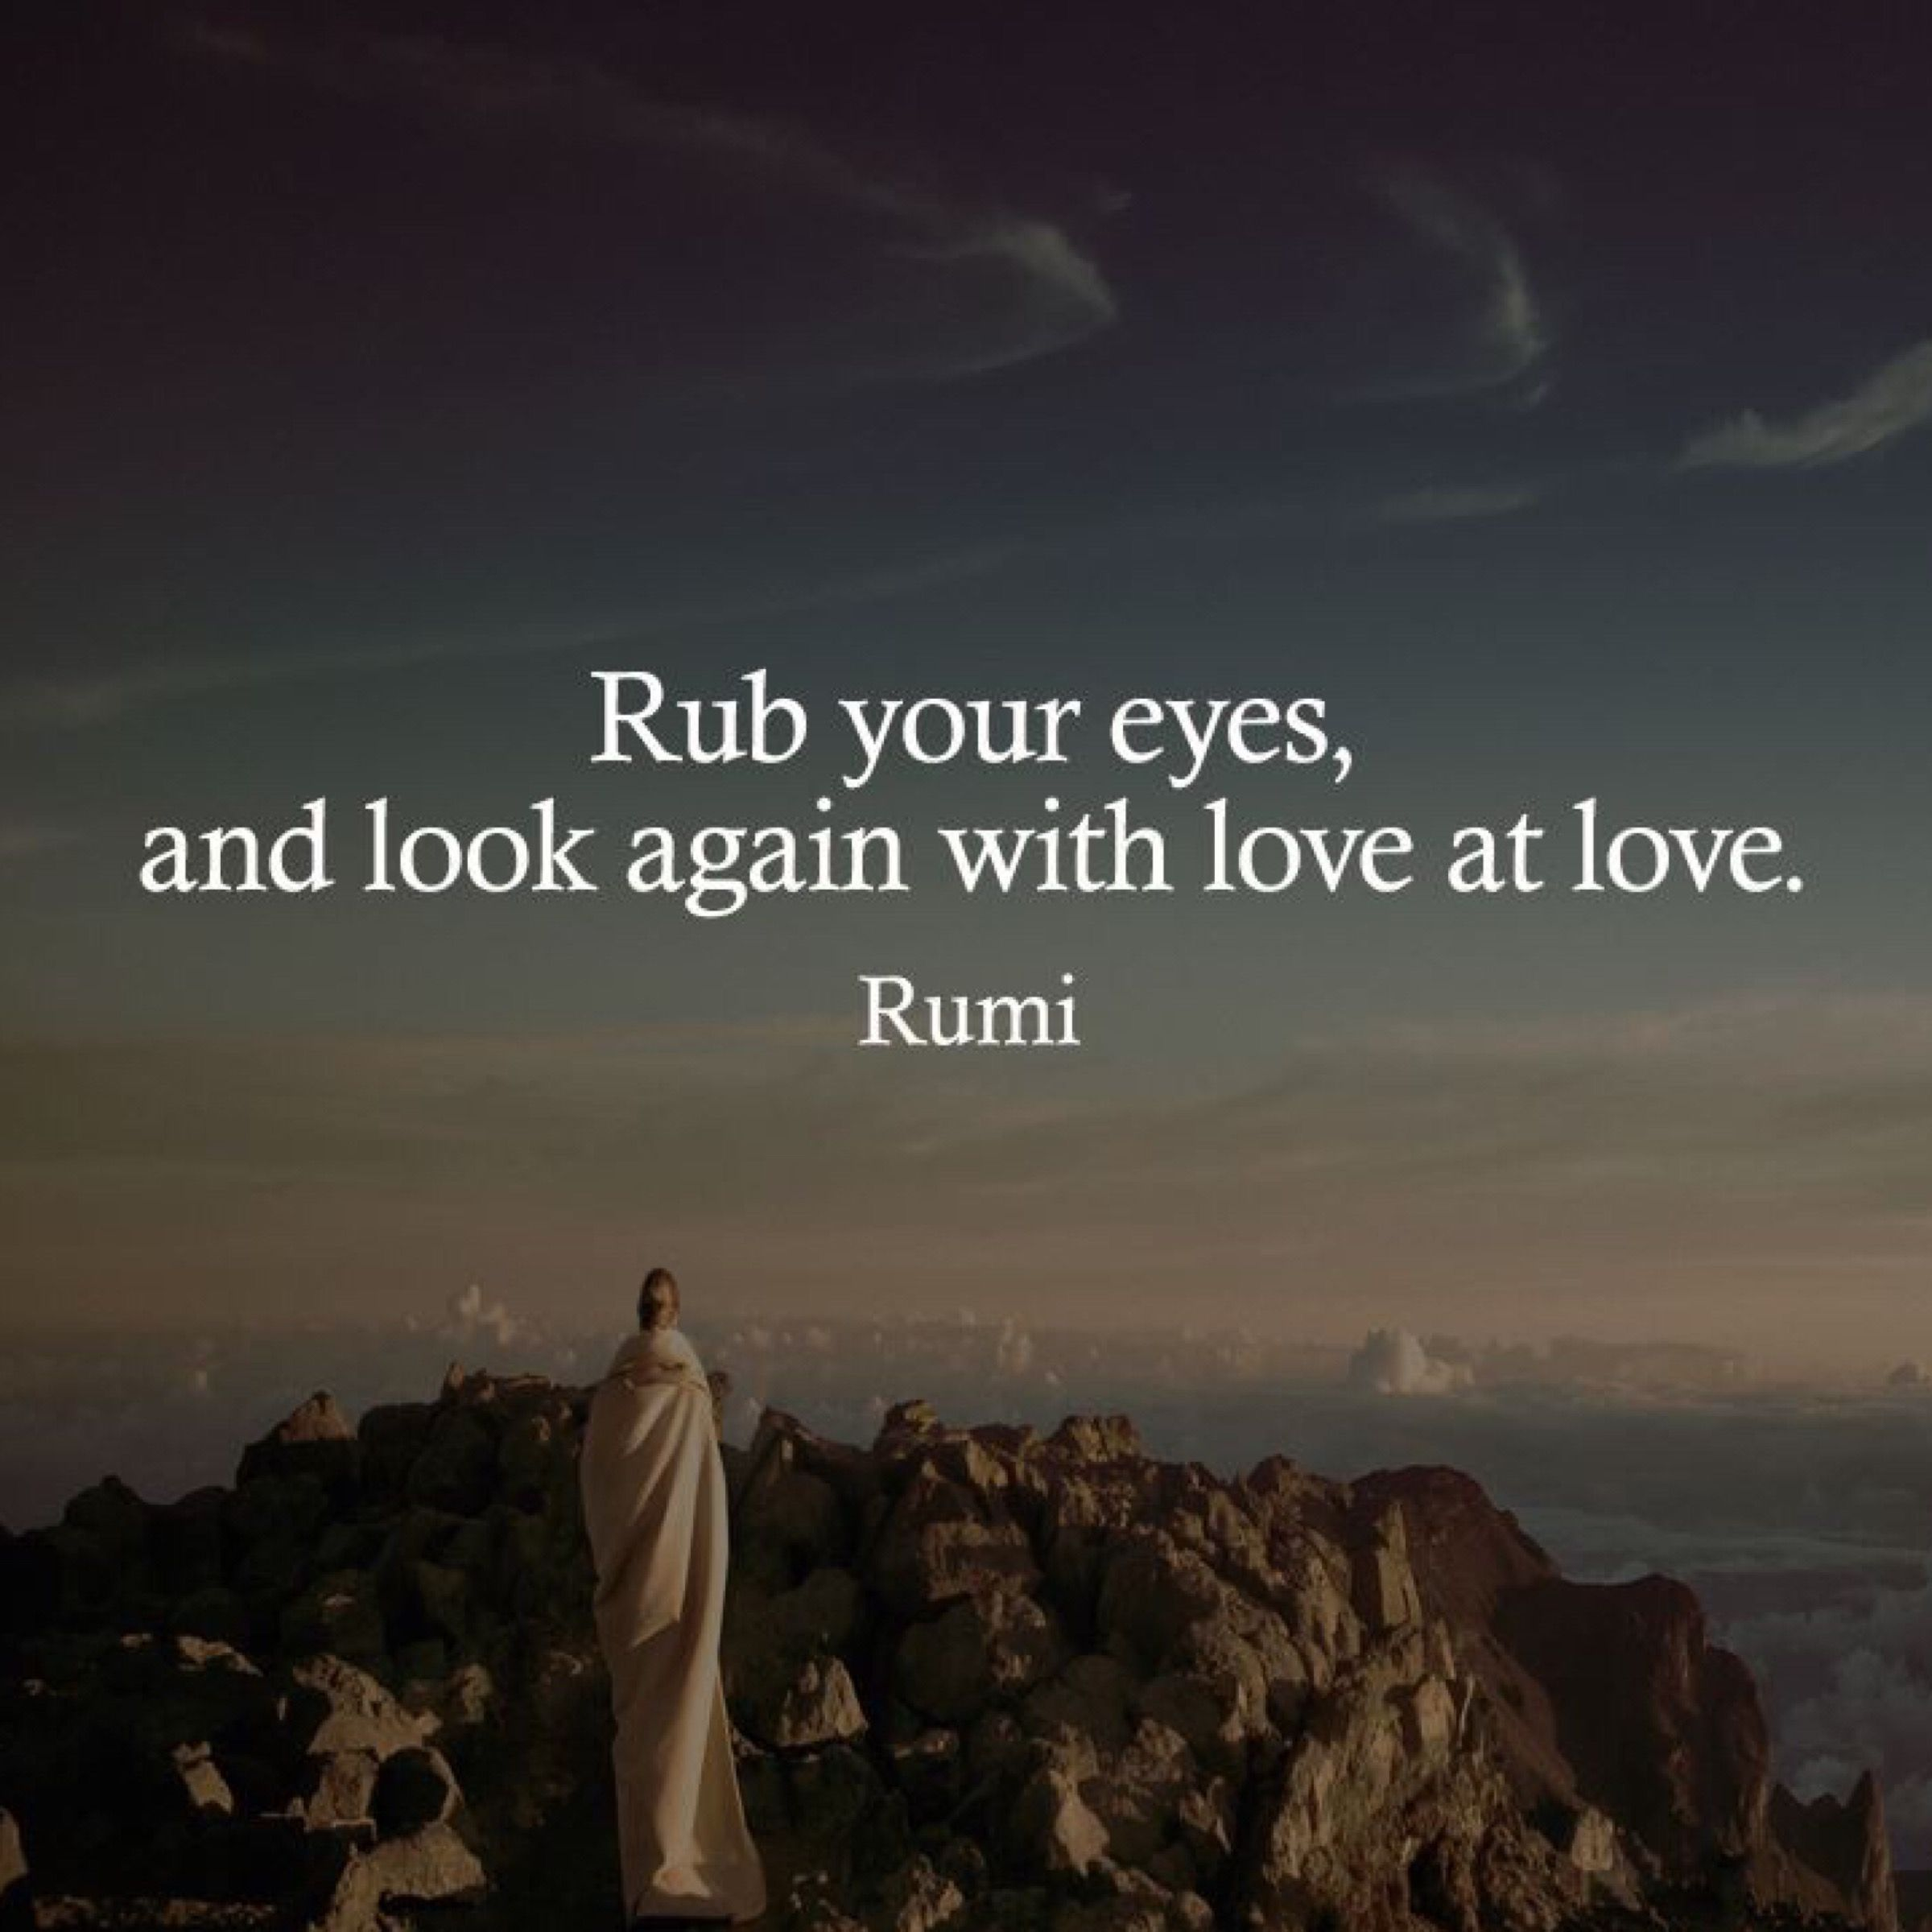 Pin By Bfree On Good Karma Rumi Quotes Rumi Love Quotes Rumi Quotes Life